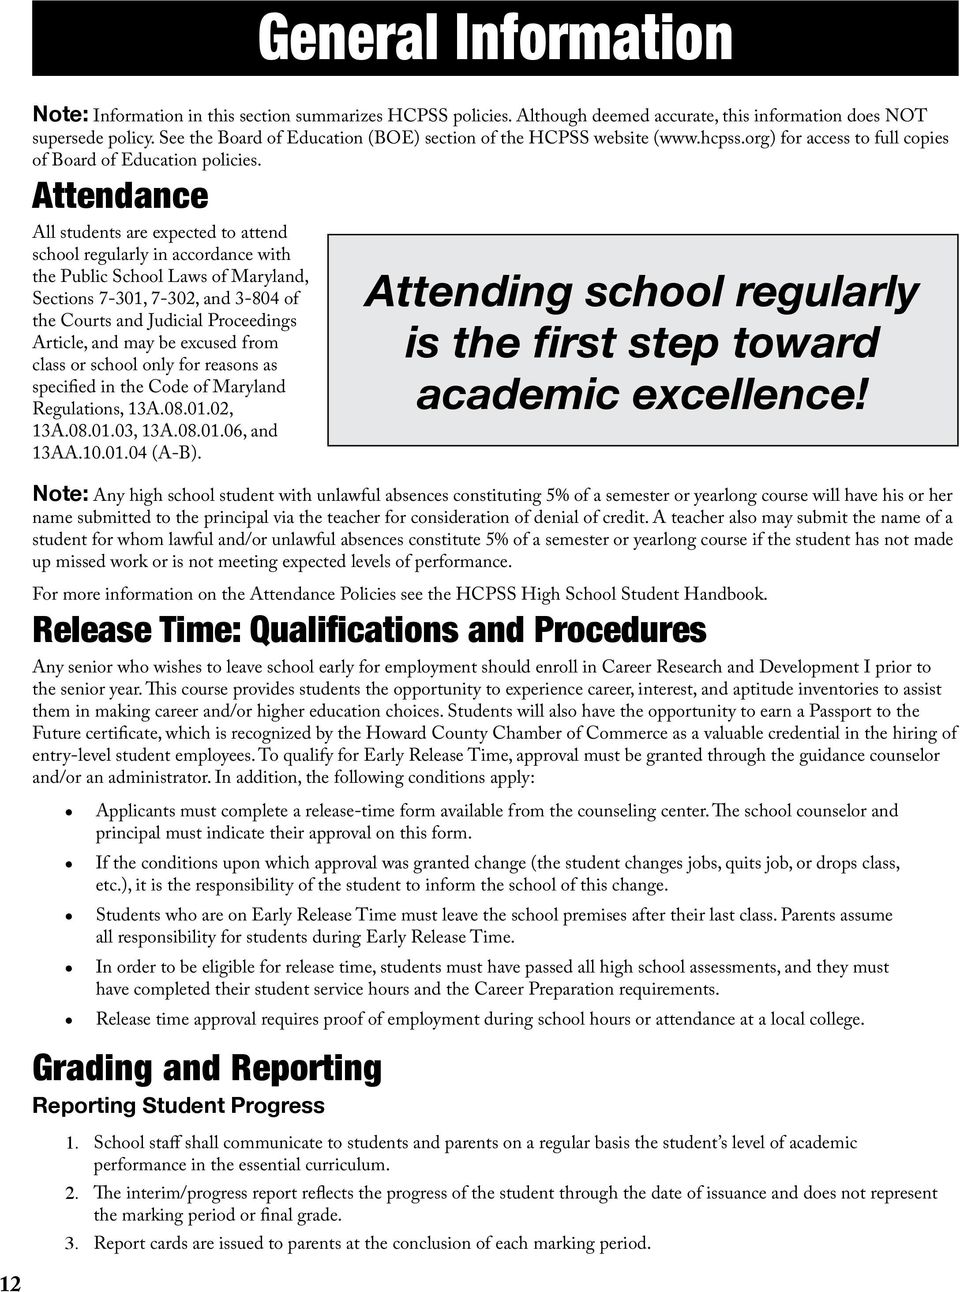 Attendance All students are expected to attend school regularly in accordance with the Public School Laws of Maryland, Sections 7-301, 7-302, and 3-804 of the Courts and Judicial Proceedings Article,